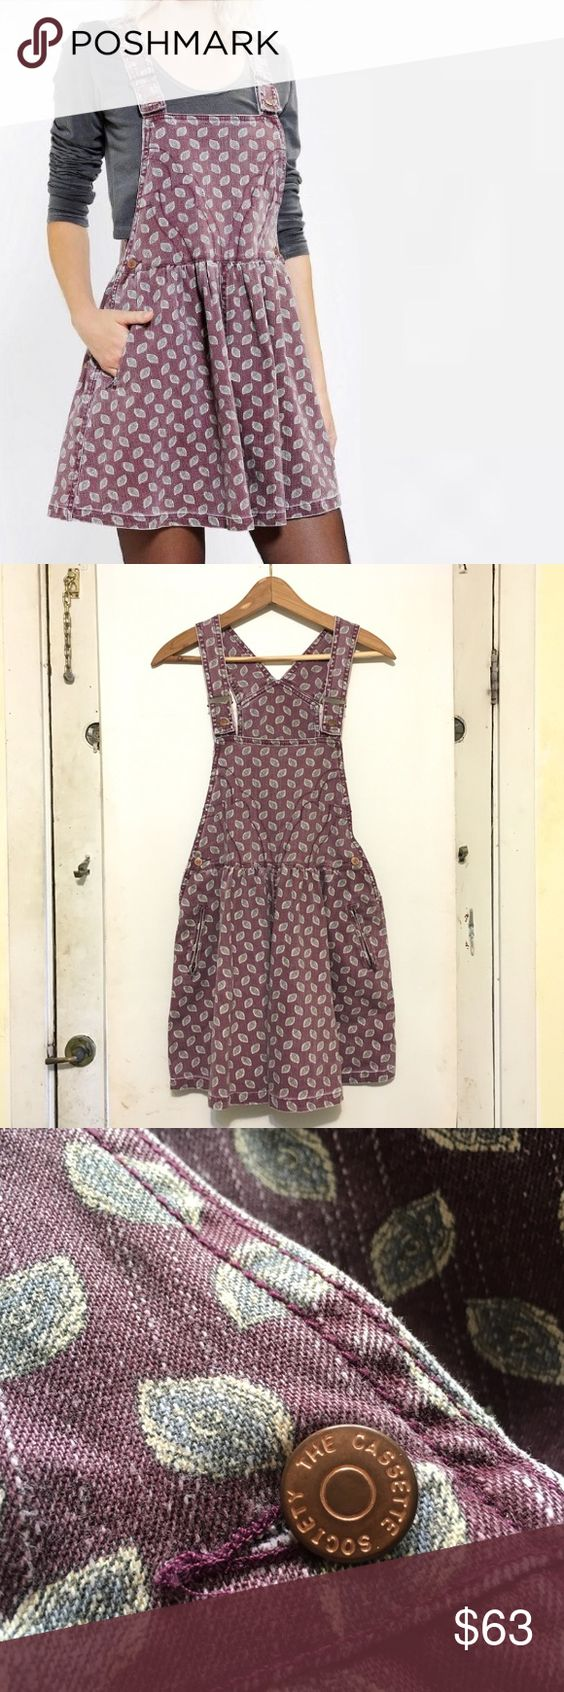 Cassette Society overall dress NWOT The Cassette Society overall dress from Urban Outfitters, size S Urban Outfitters Dresses